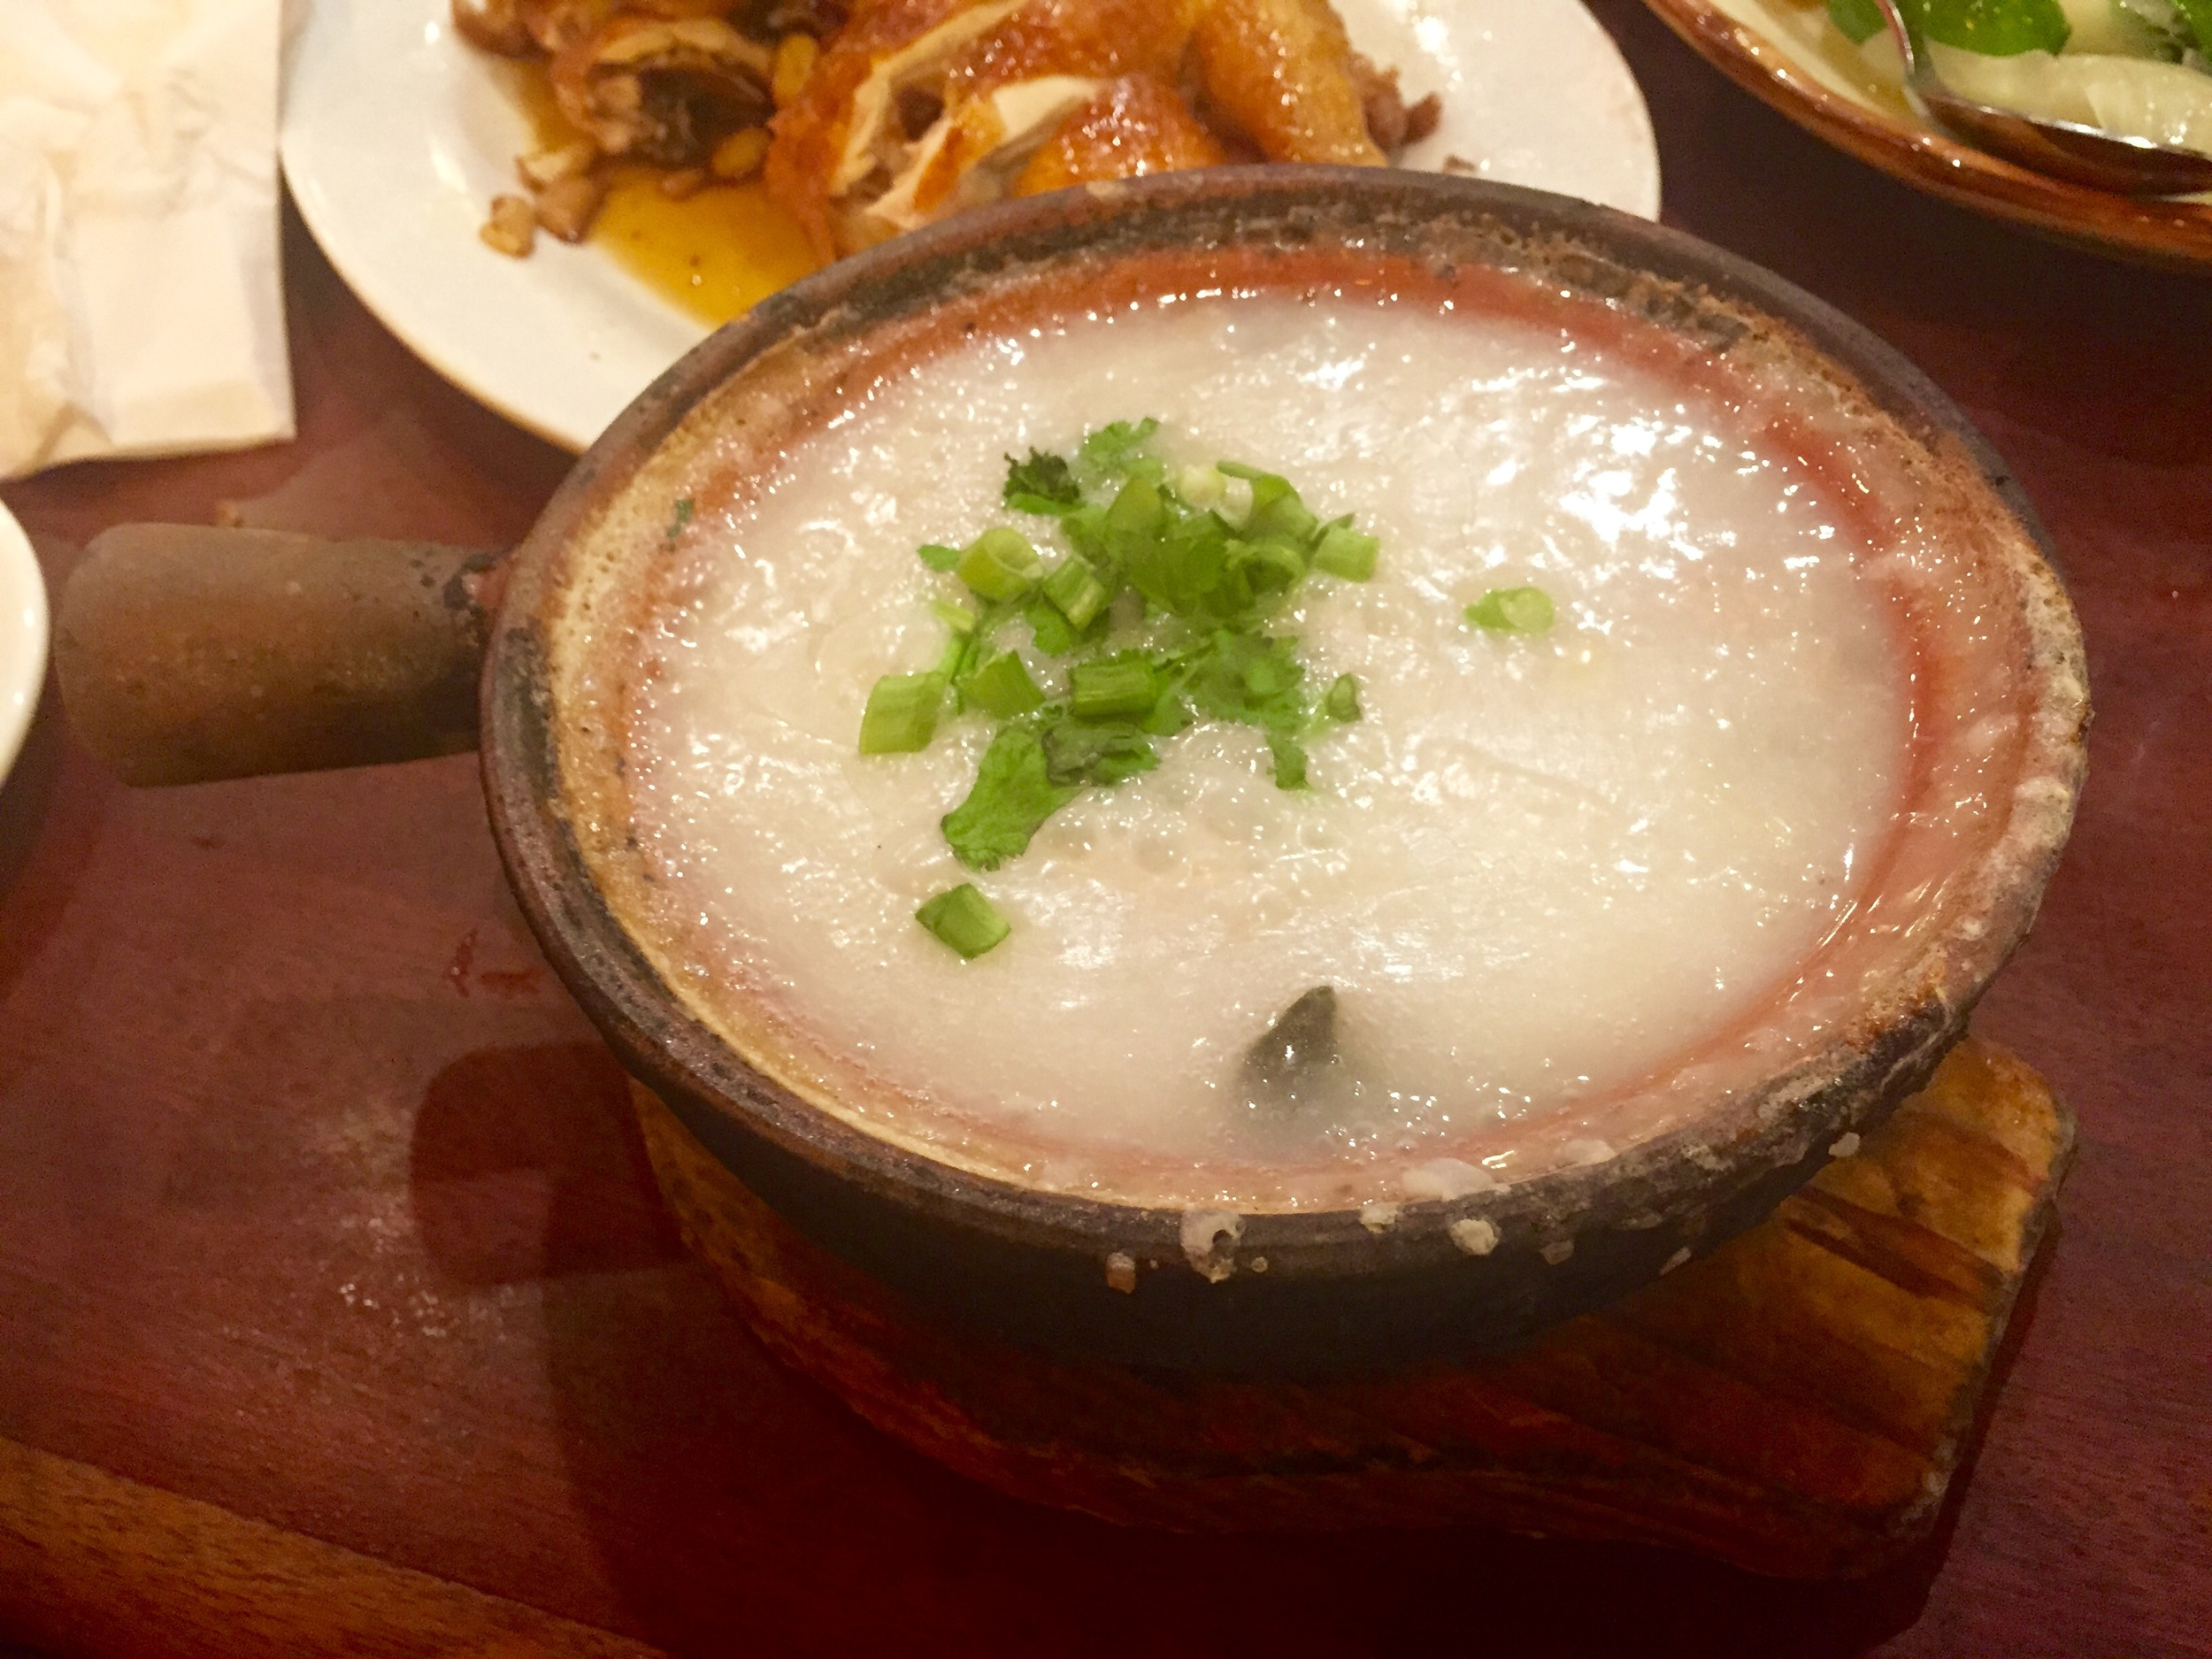 Century Egg & Pork Rice Porridge (皮蛋瘦肉粥)